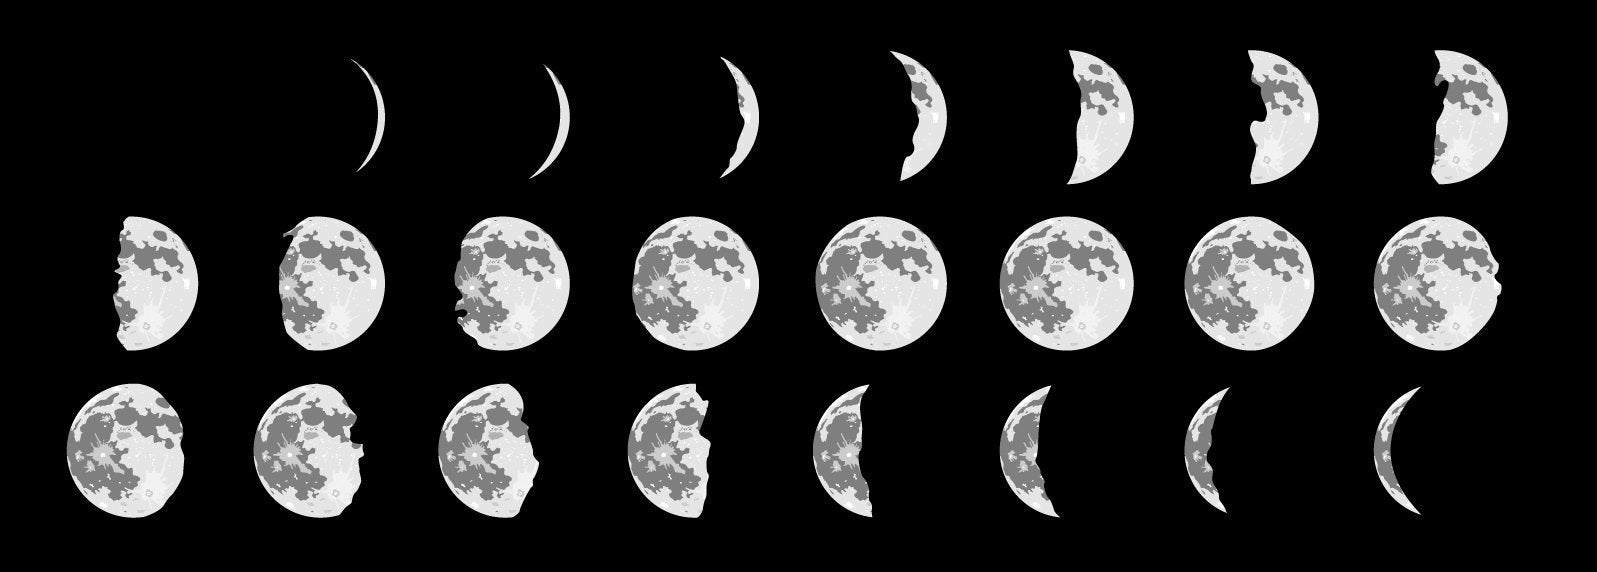 DIY Your Own Moon Phase Chart! Check Out Our Favorite Pinterest Ideas